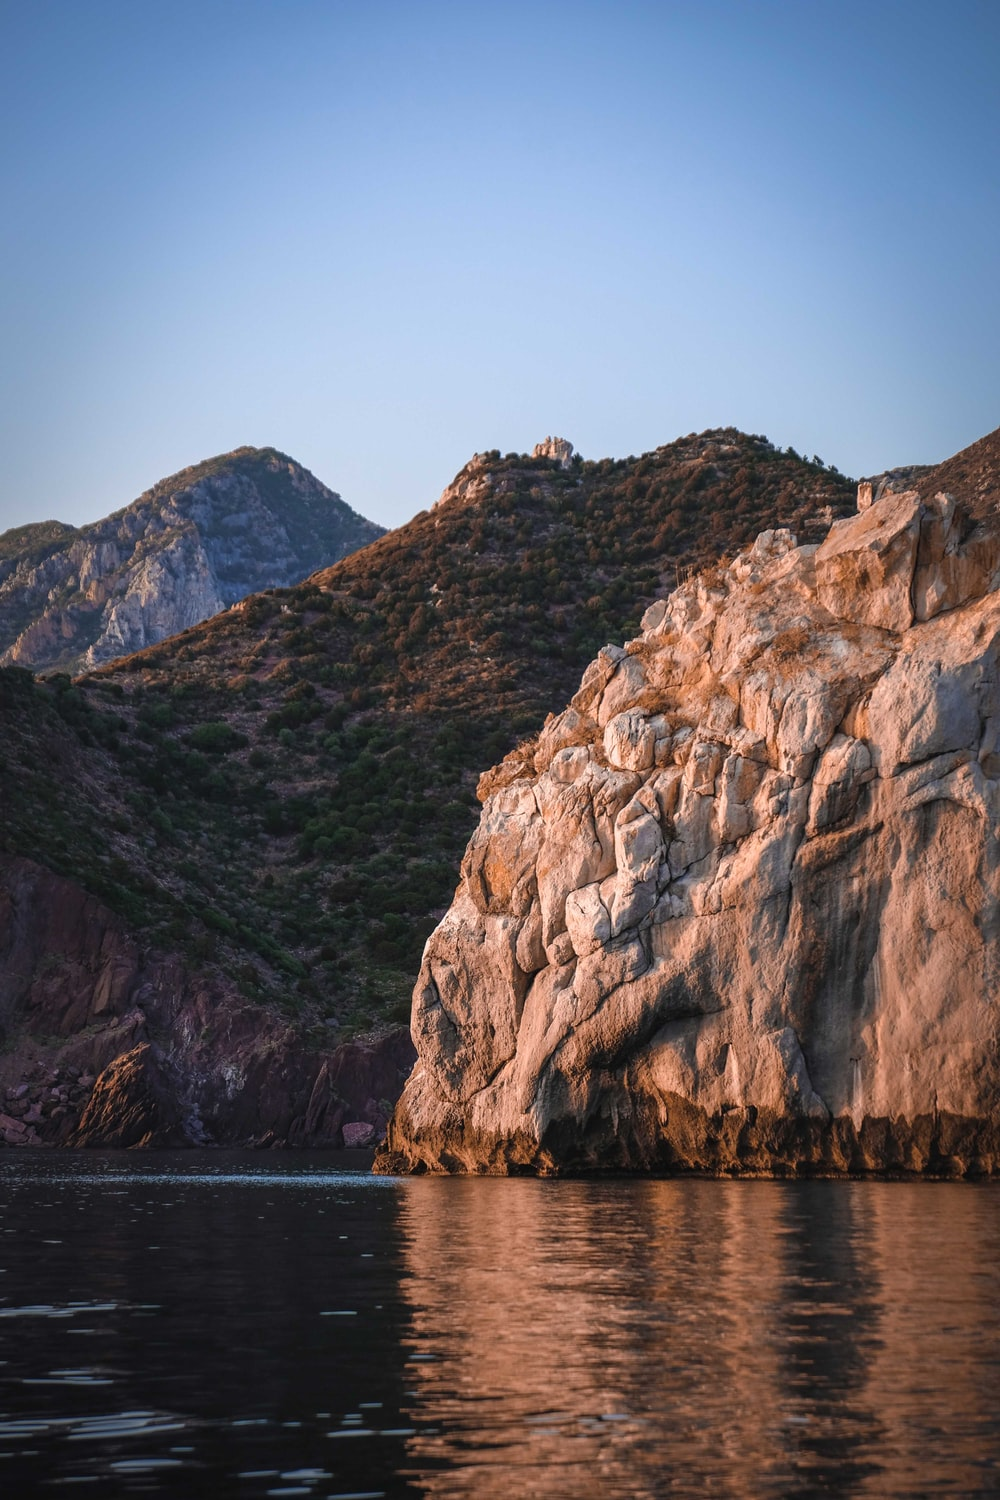 brown rocky mountain beside body of water during daytime